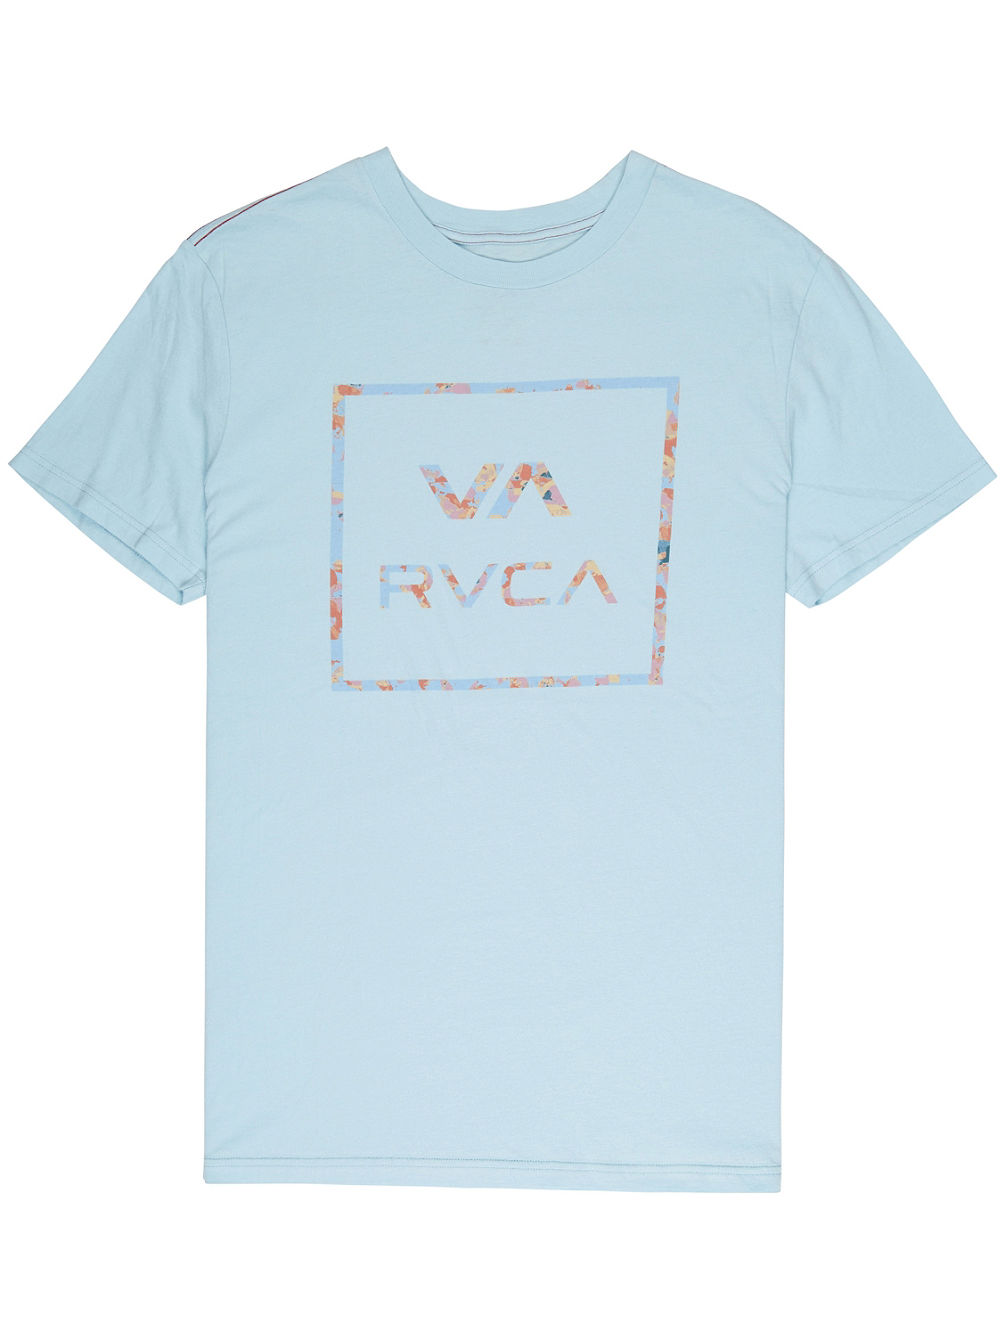 Va All The Way T-Shirt